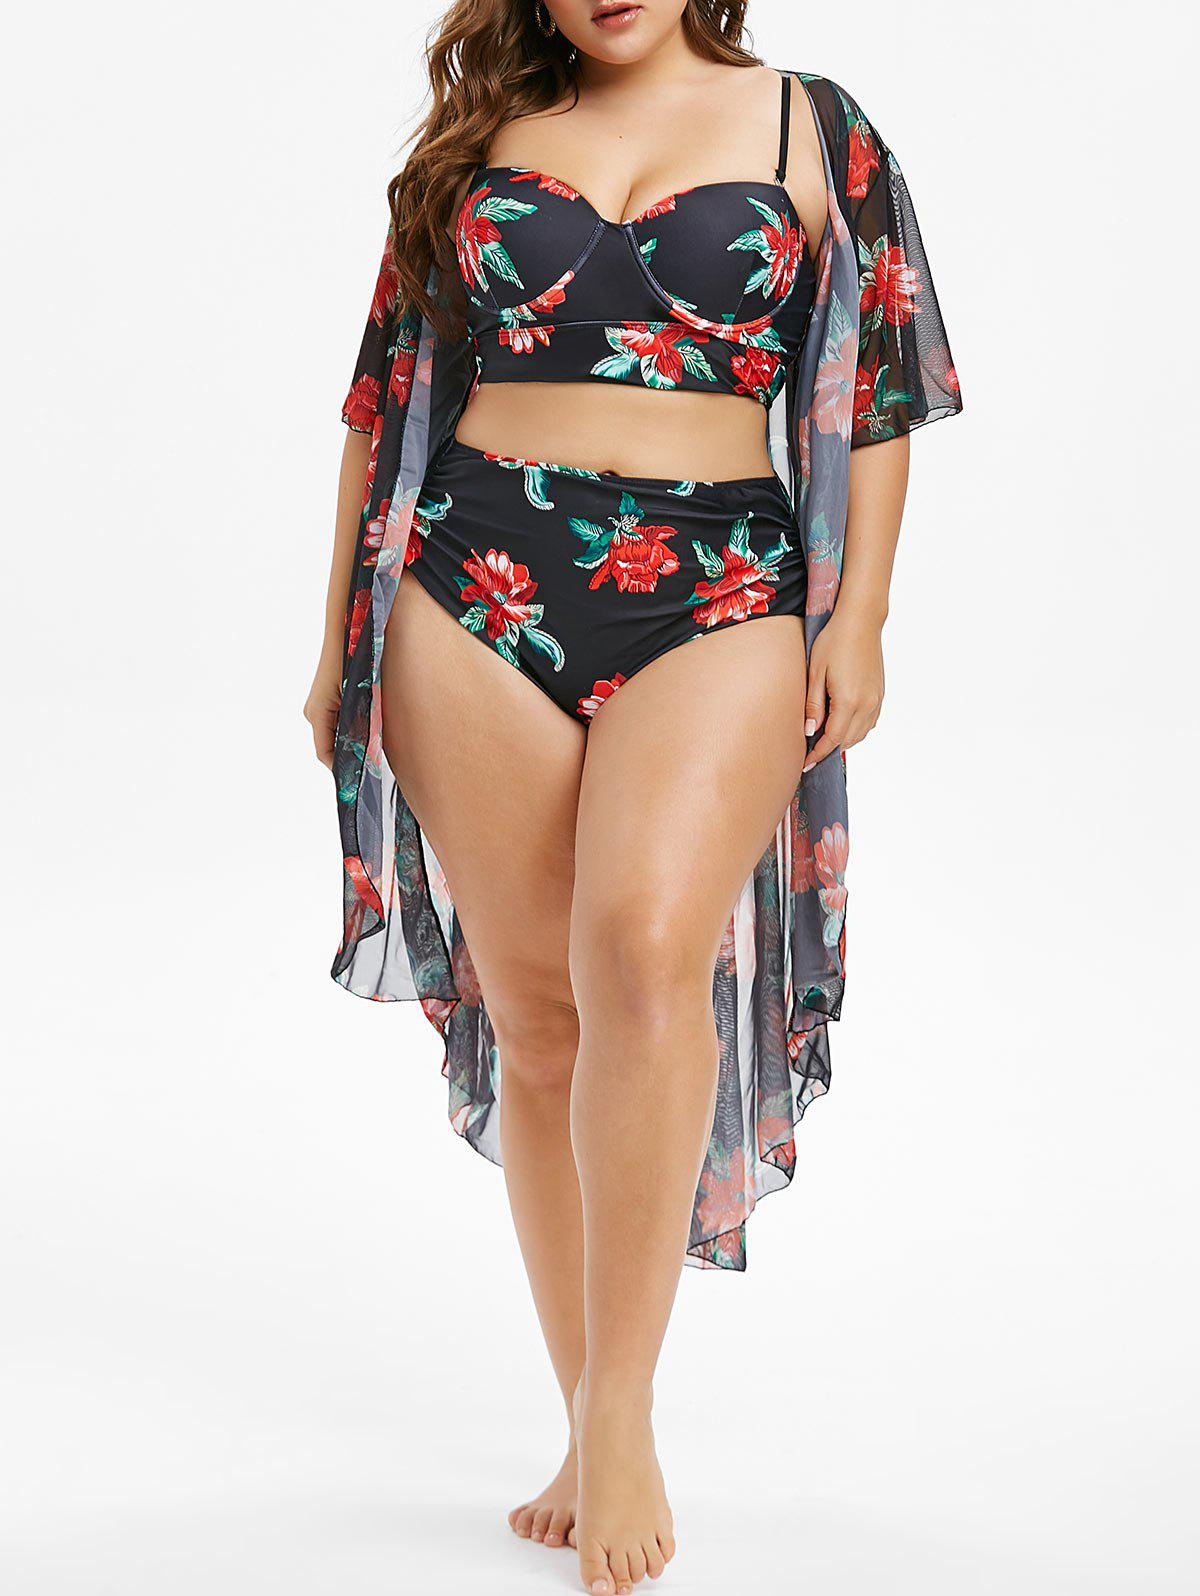 Plus Size Floral Print Underwire Tankini Swimwear With Cover Up - BLACK 2X